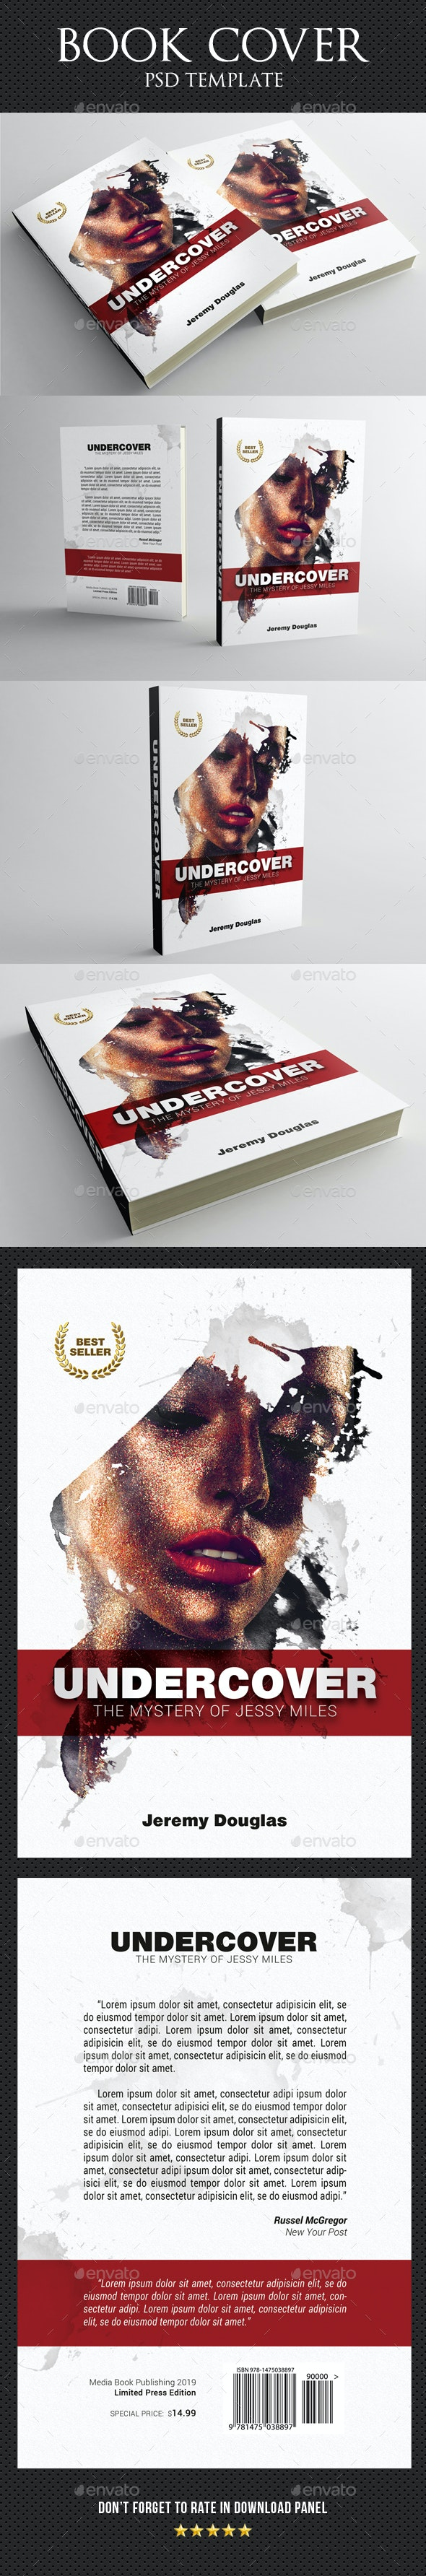 Undercover Book Cover Template - Miscellaneous Print Templates